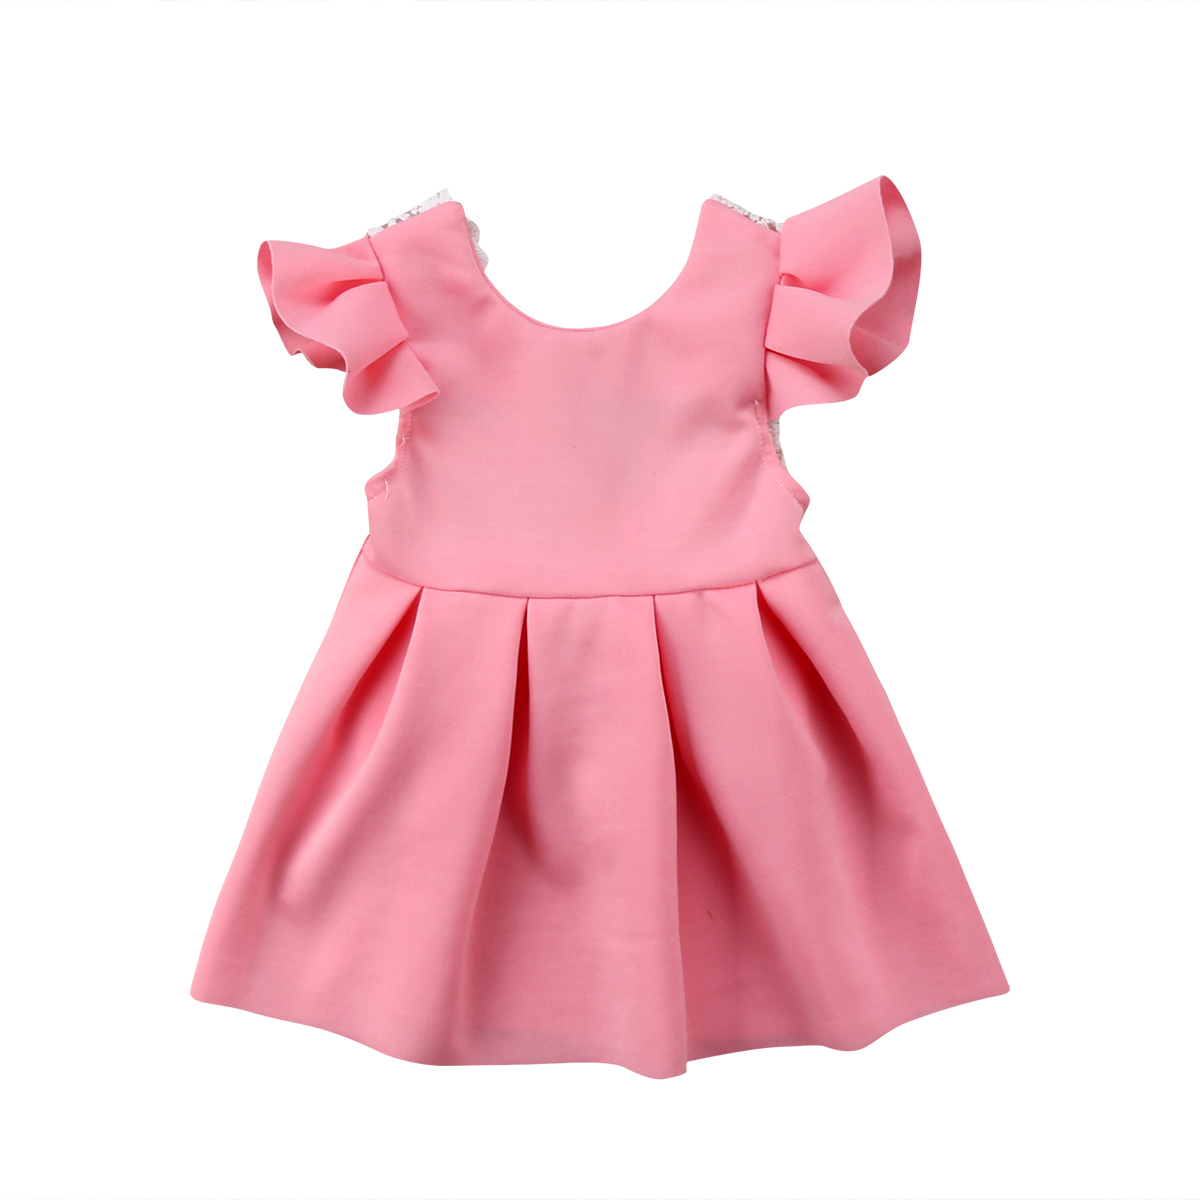 Backless Lace Big Bowknot Princess Dress Pink Baby Girls Toddler Ruffles Dresses Ball Gown Party Tulle Dress Sundress